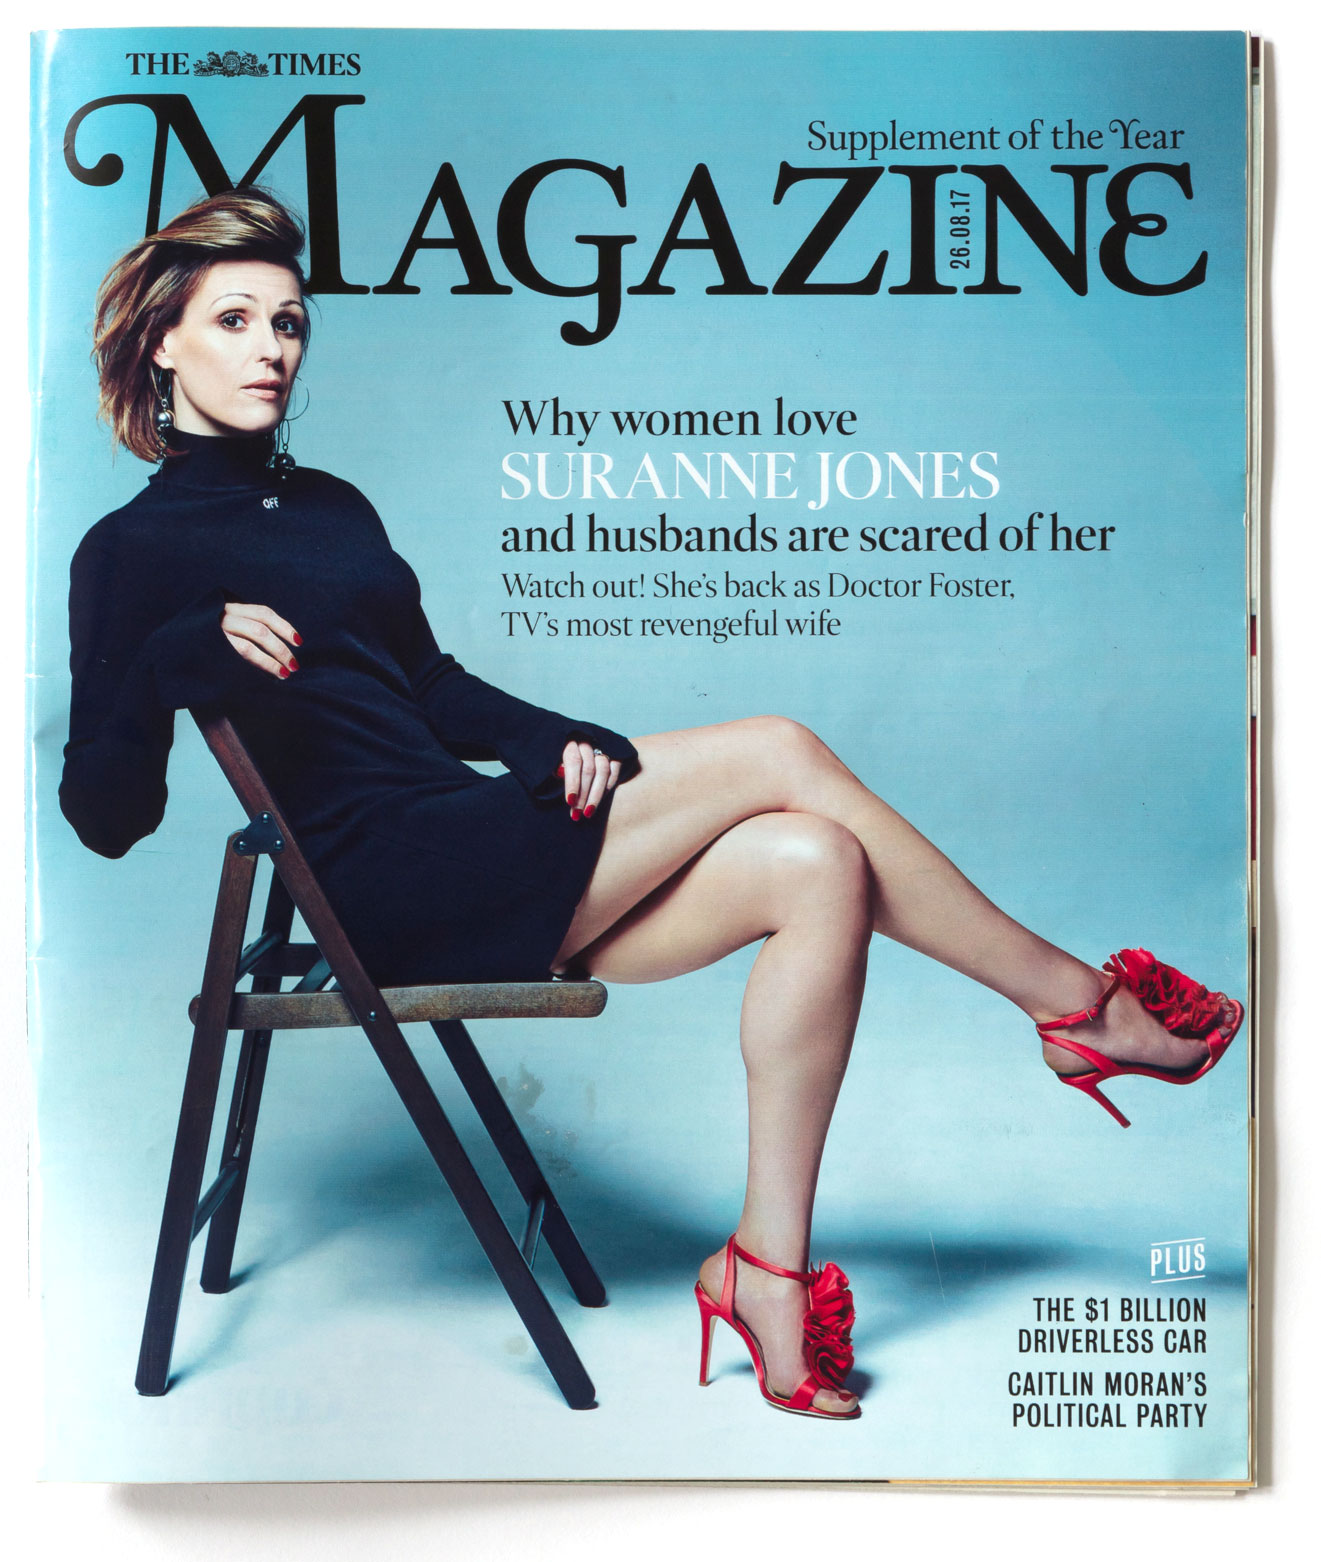 THE TIMES MAGAZINE - AUGUST 2017 1